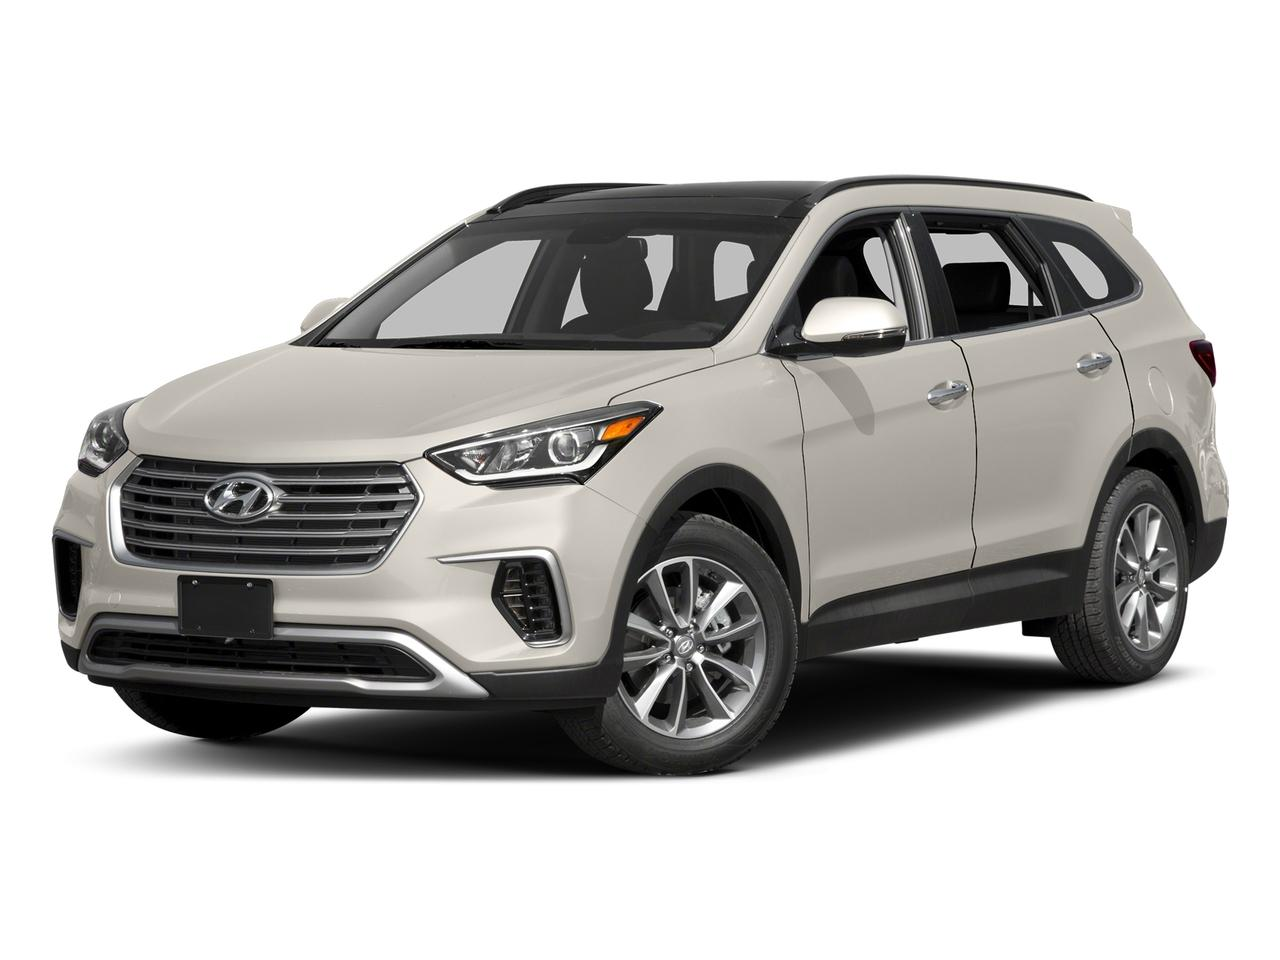 2017 Hyundai Santa Fe Vehicle Photo in El Paso, TX 79922